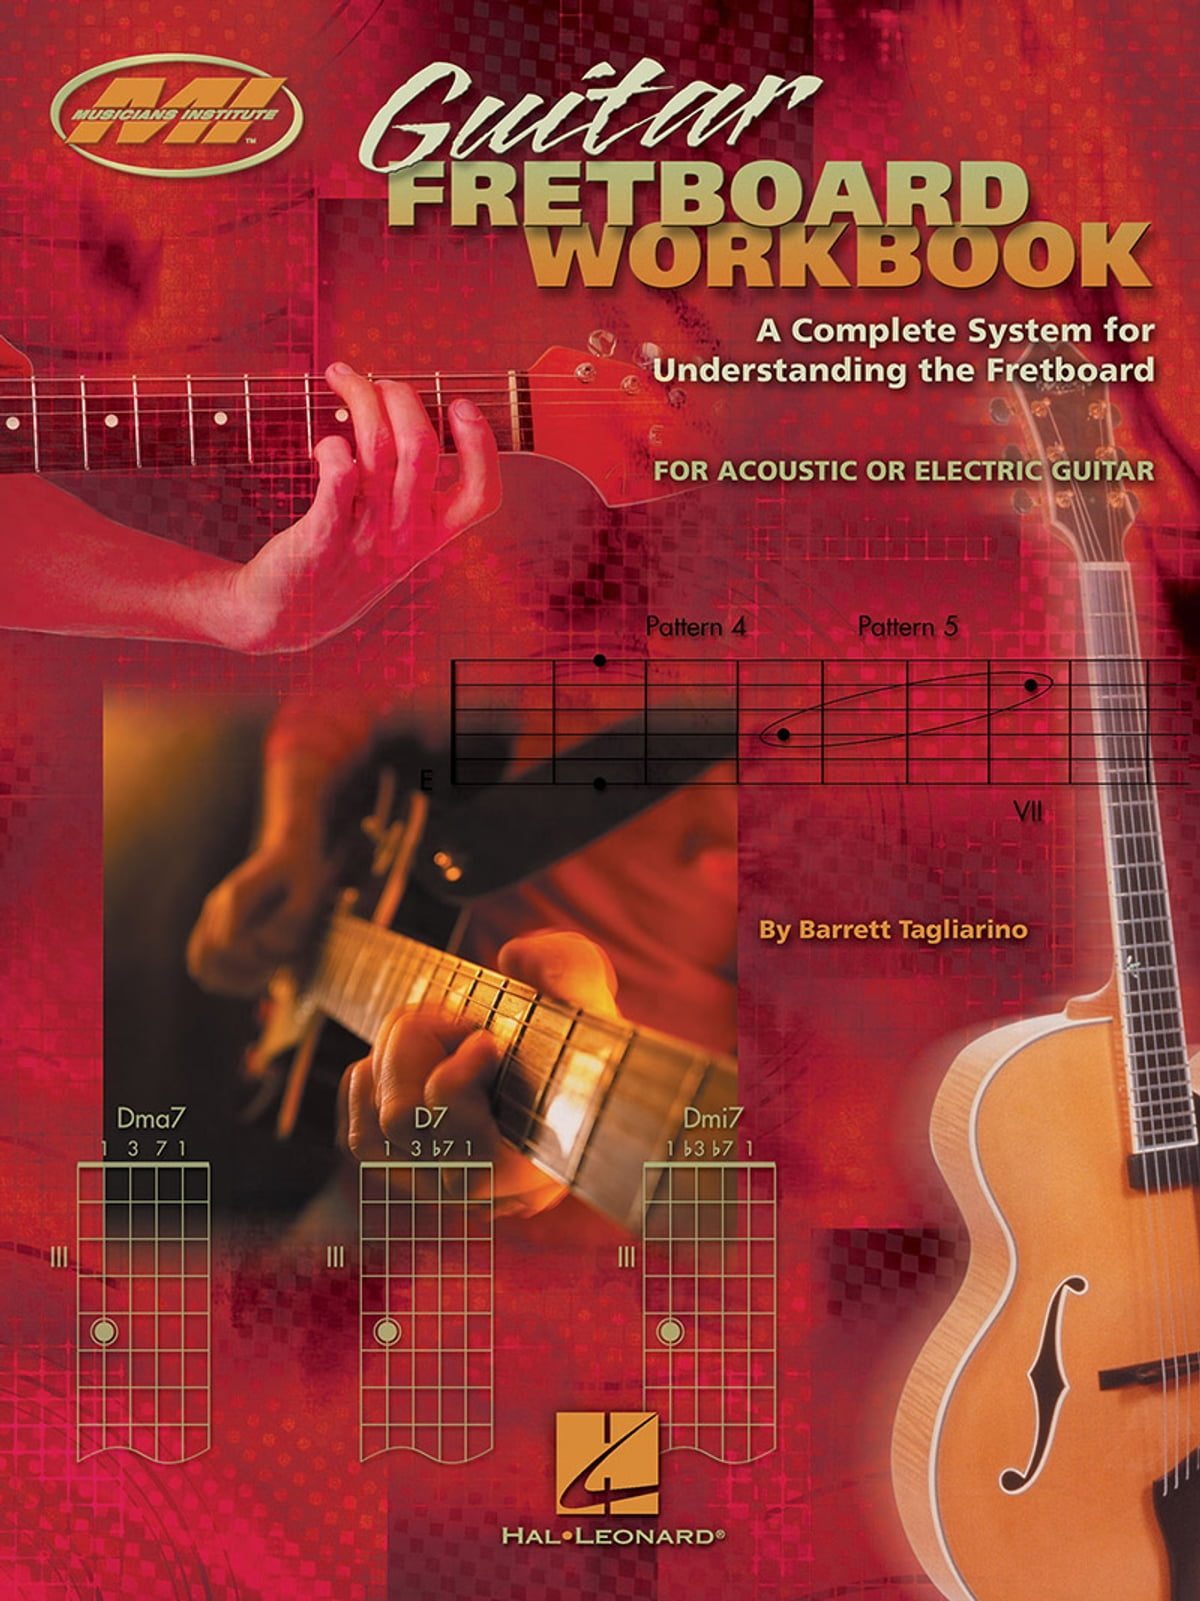 Workbooks music in theory and practice workbook : Guitar Fretboard Workbook (Music Instruction) eBook by Barrett ...